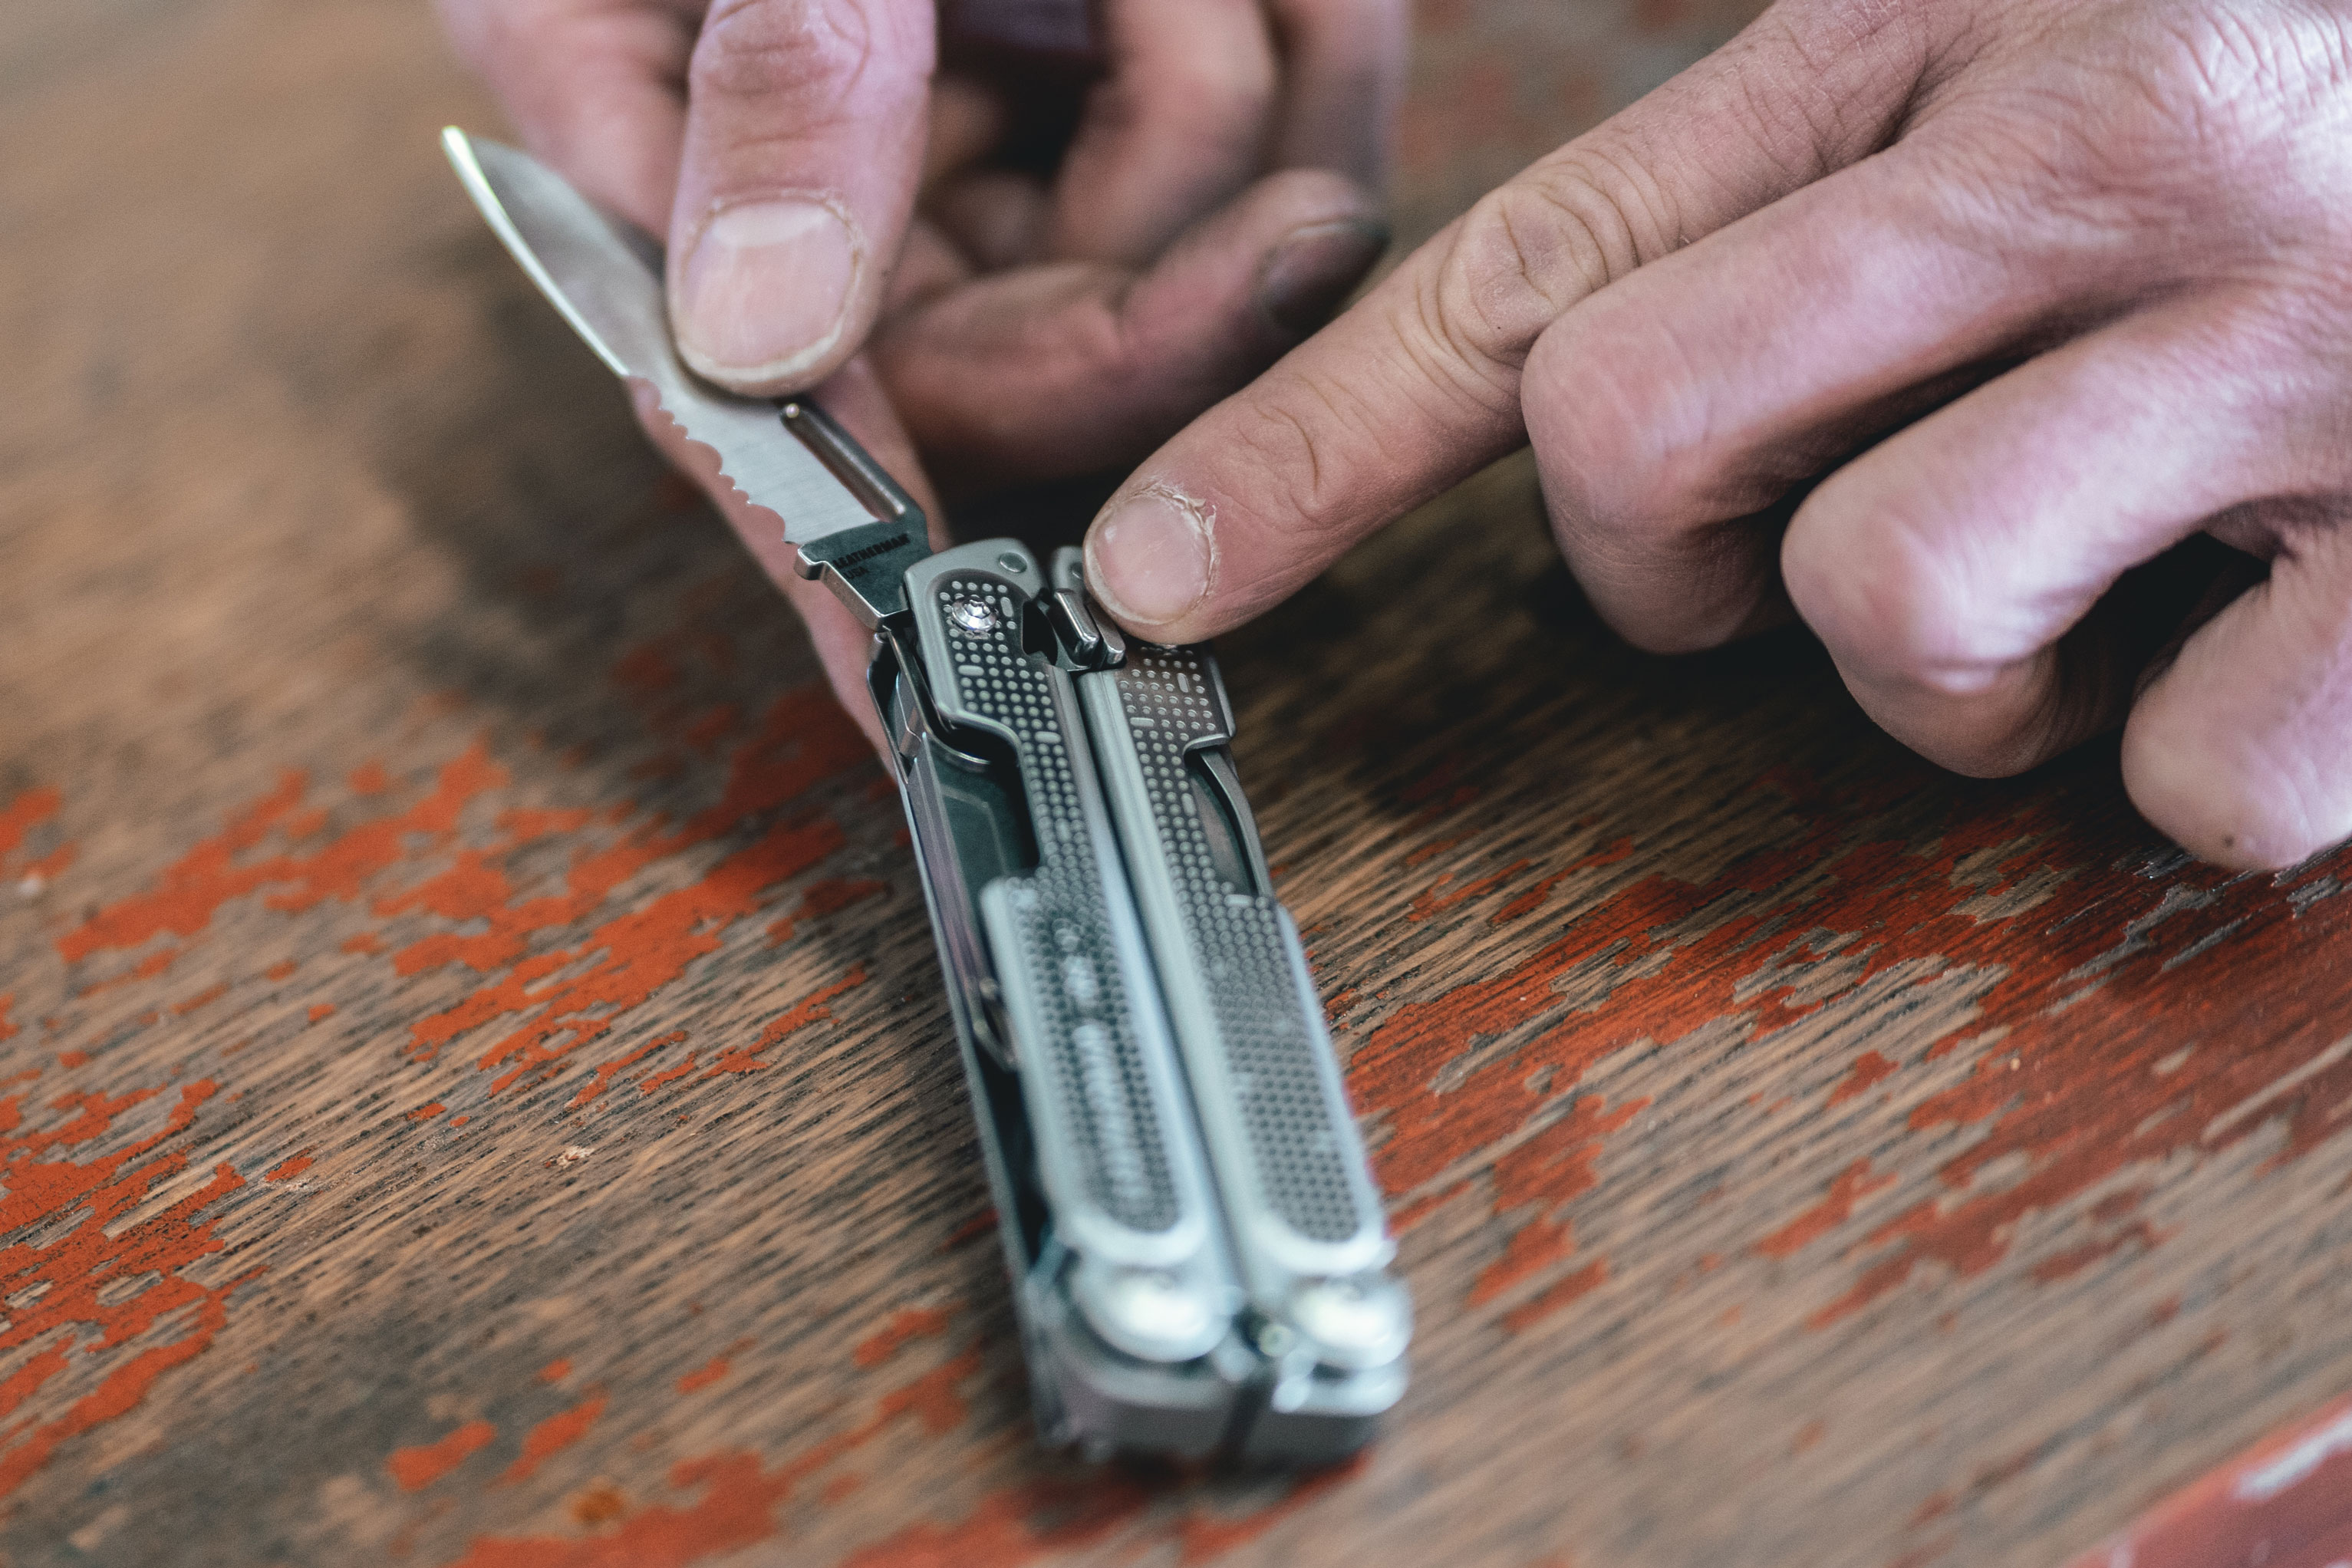 Leatherman Free knife tool lock release